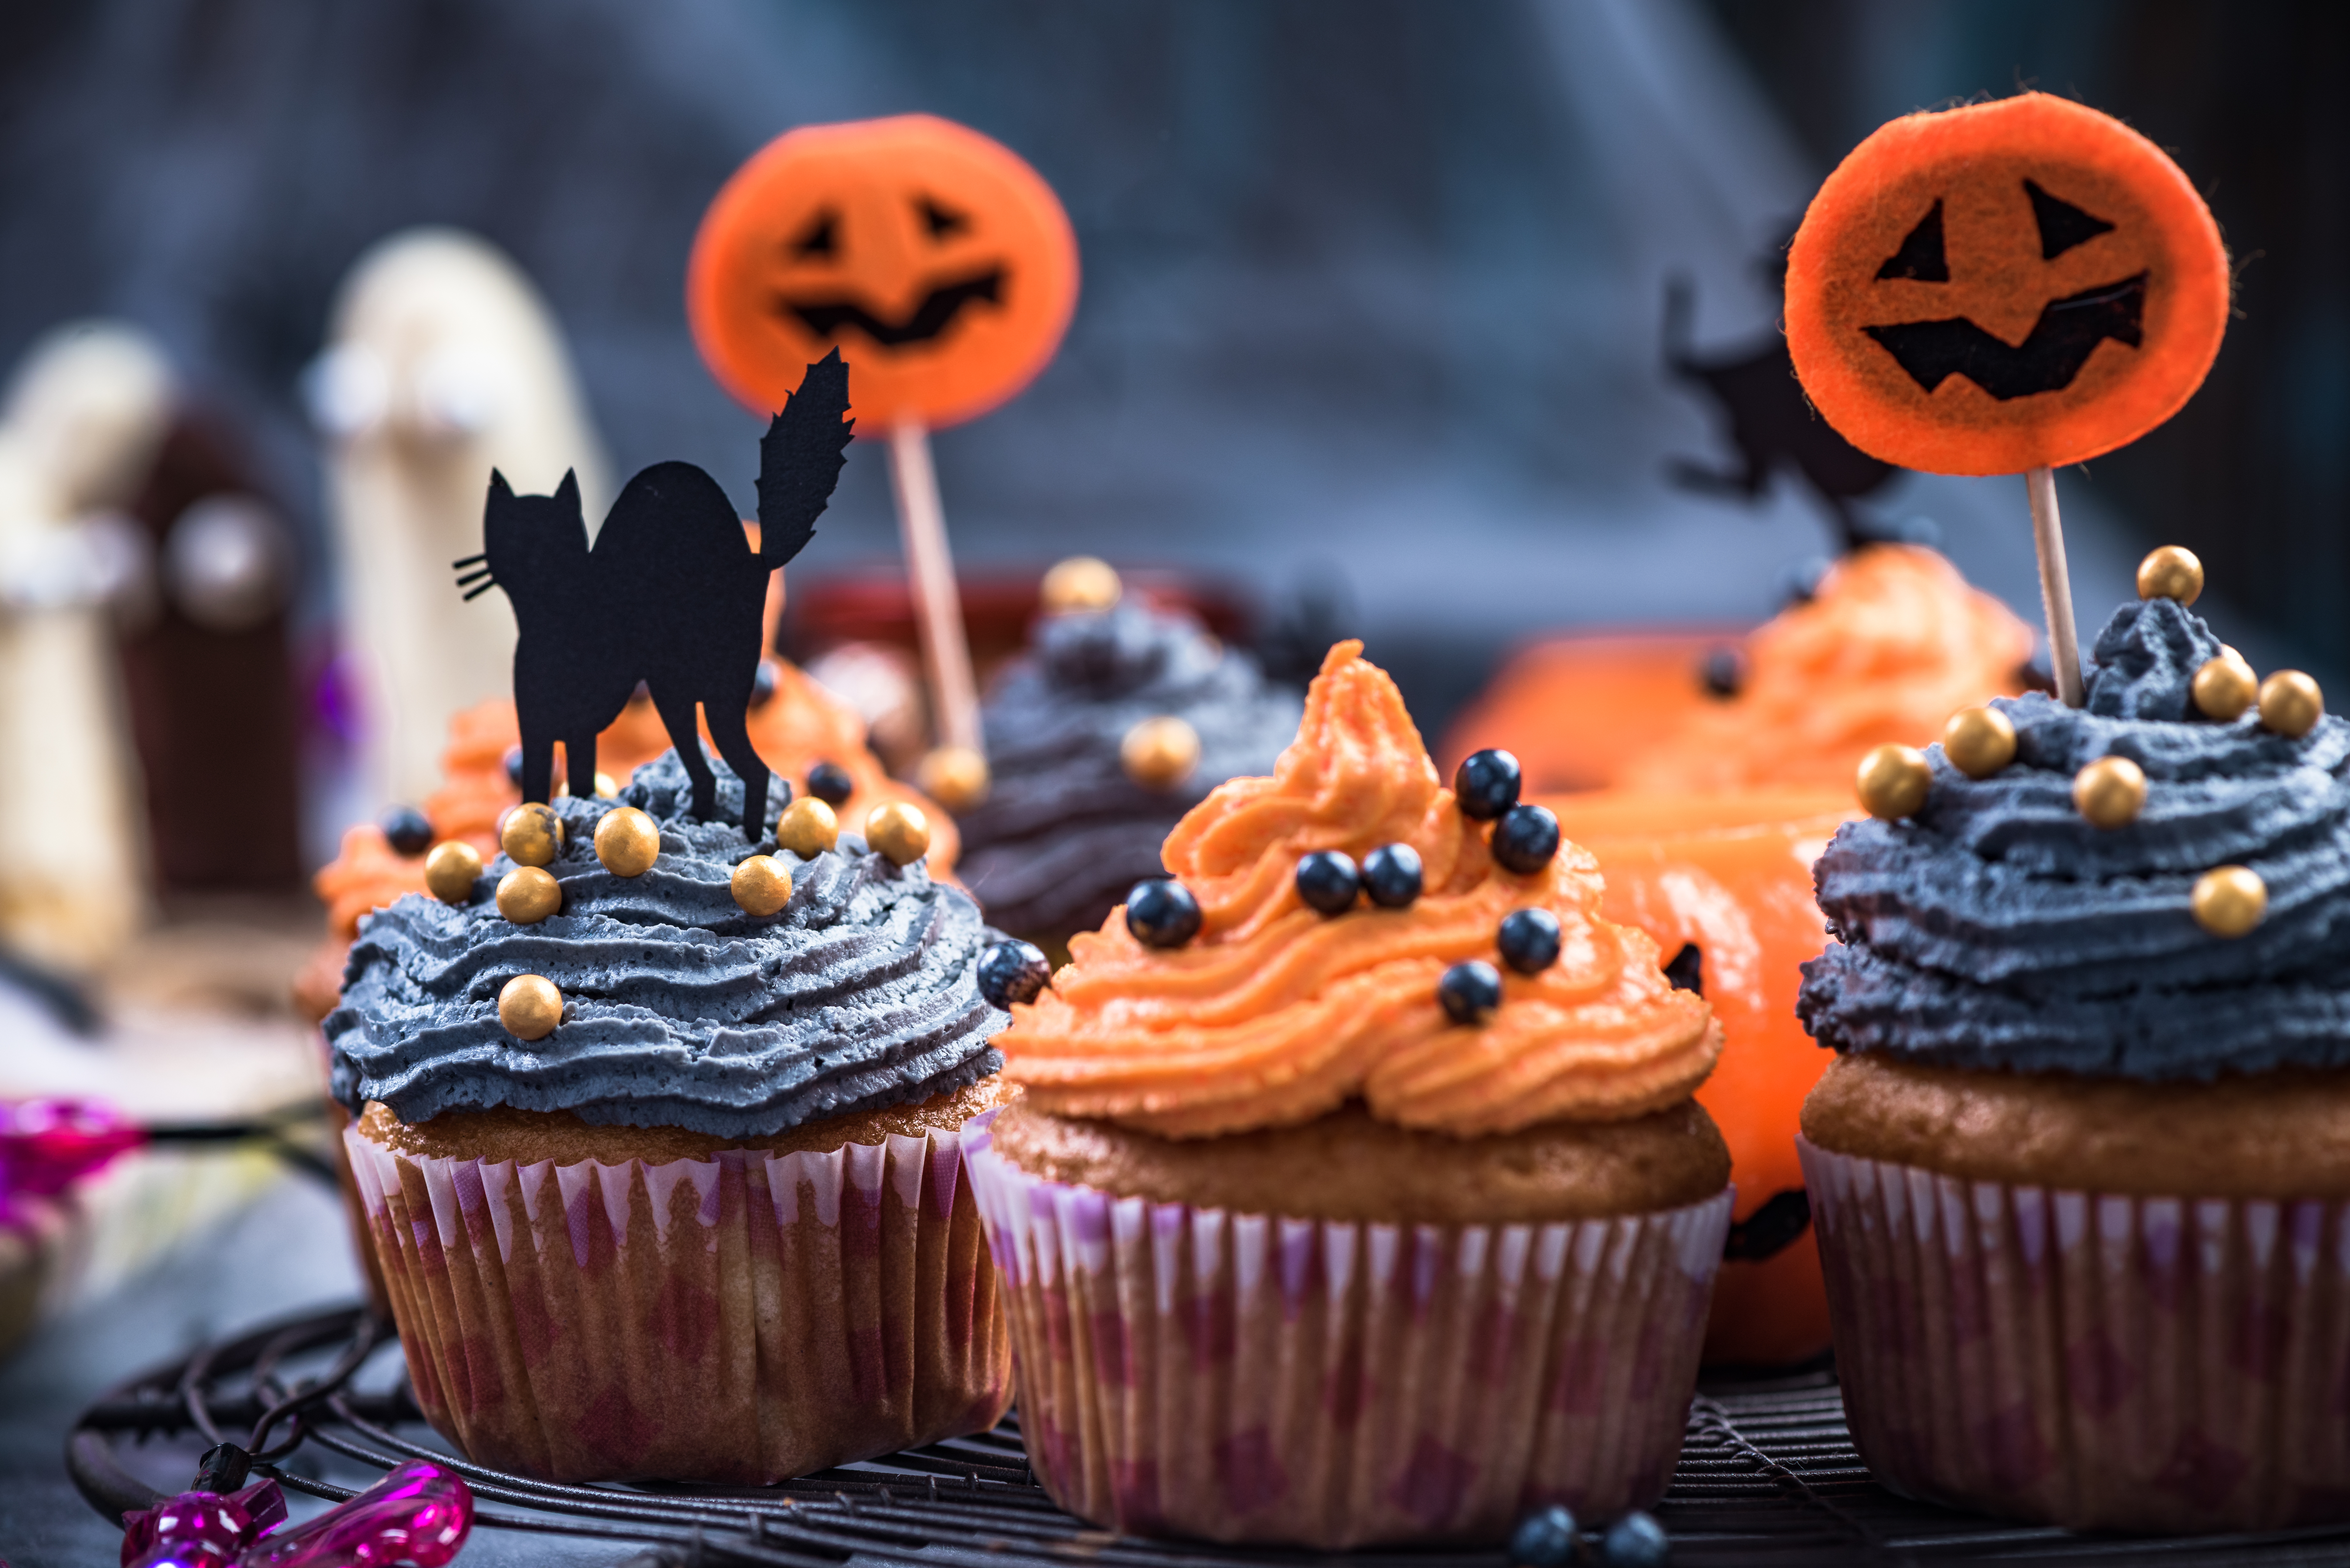 Black-and-orange-cupcakes-decorated-for-Halloween